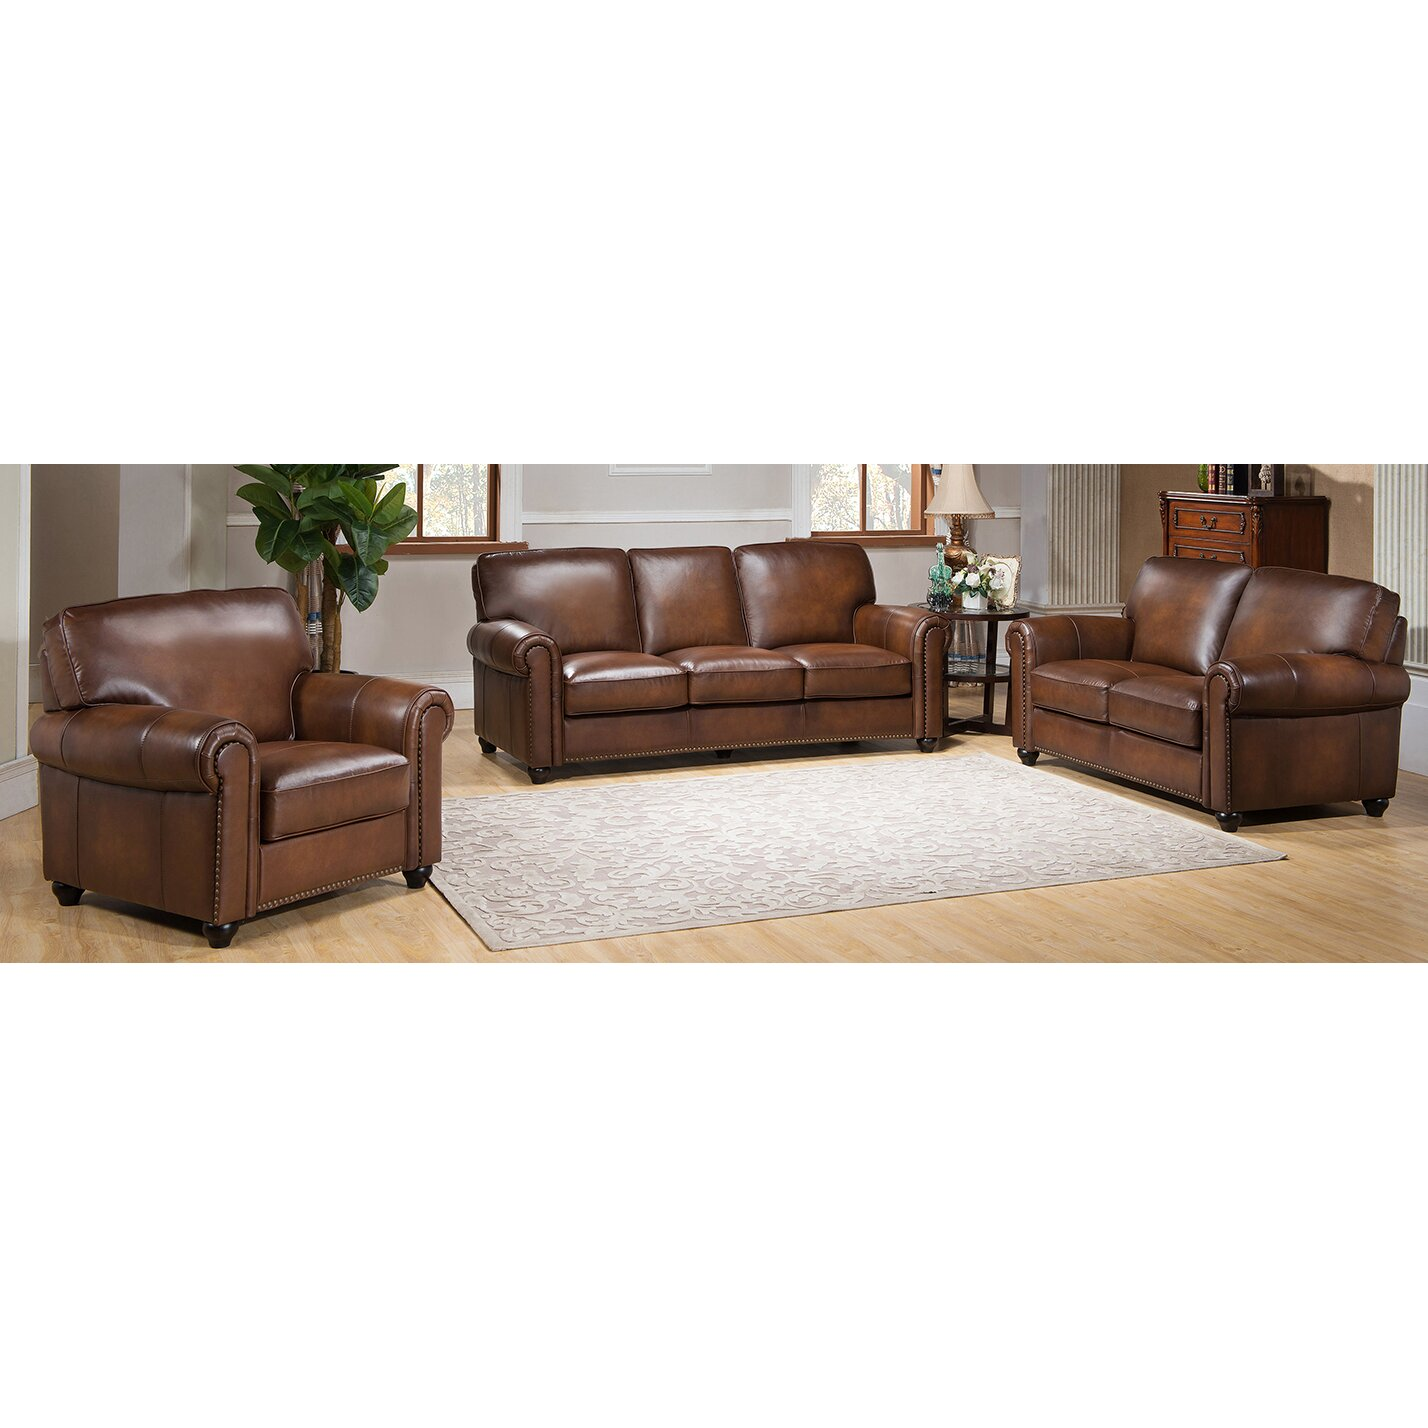 Amax Aspen 3 Piece Leather Living Room Set Wayfair Ca